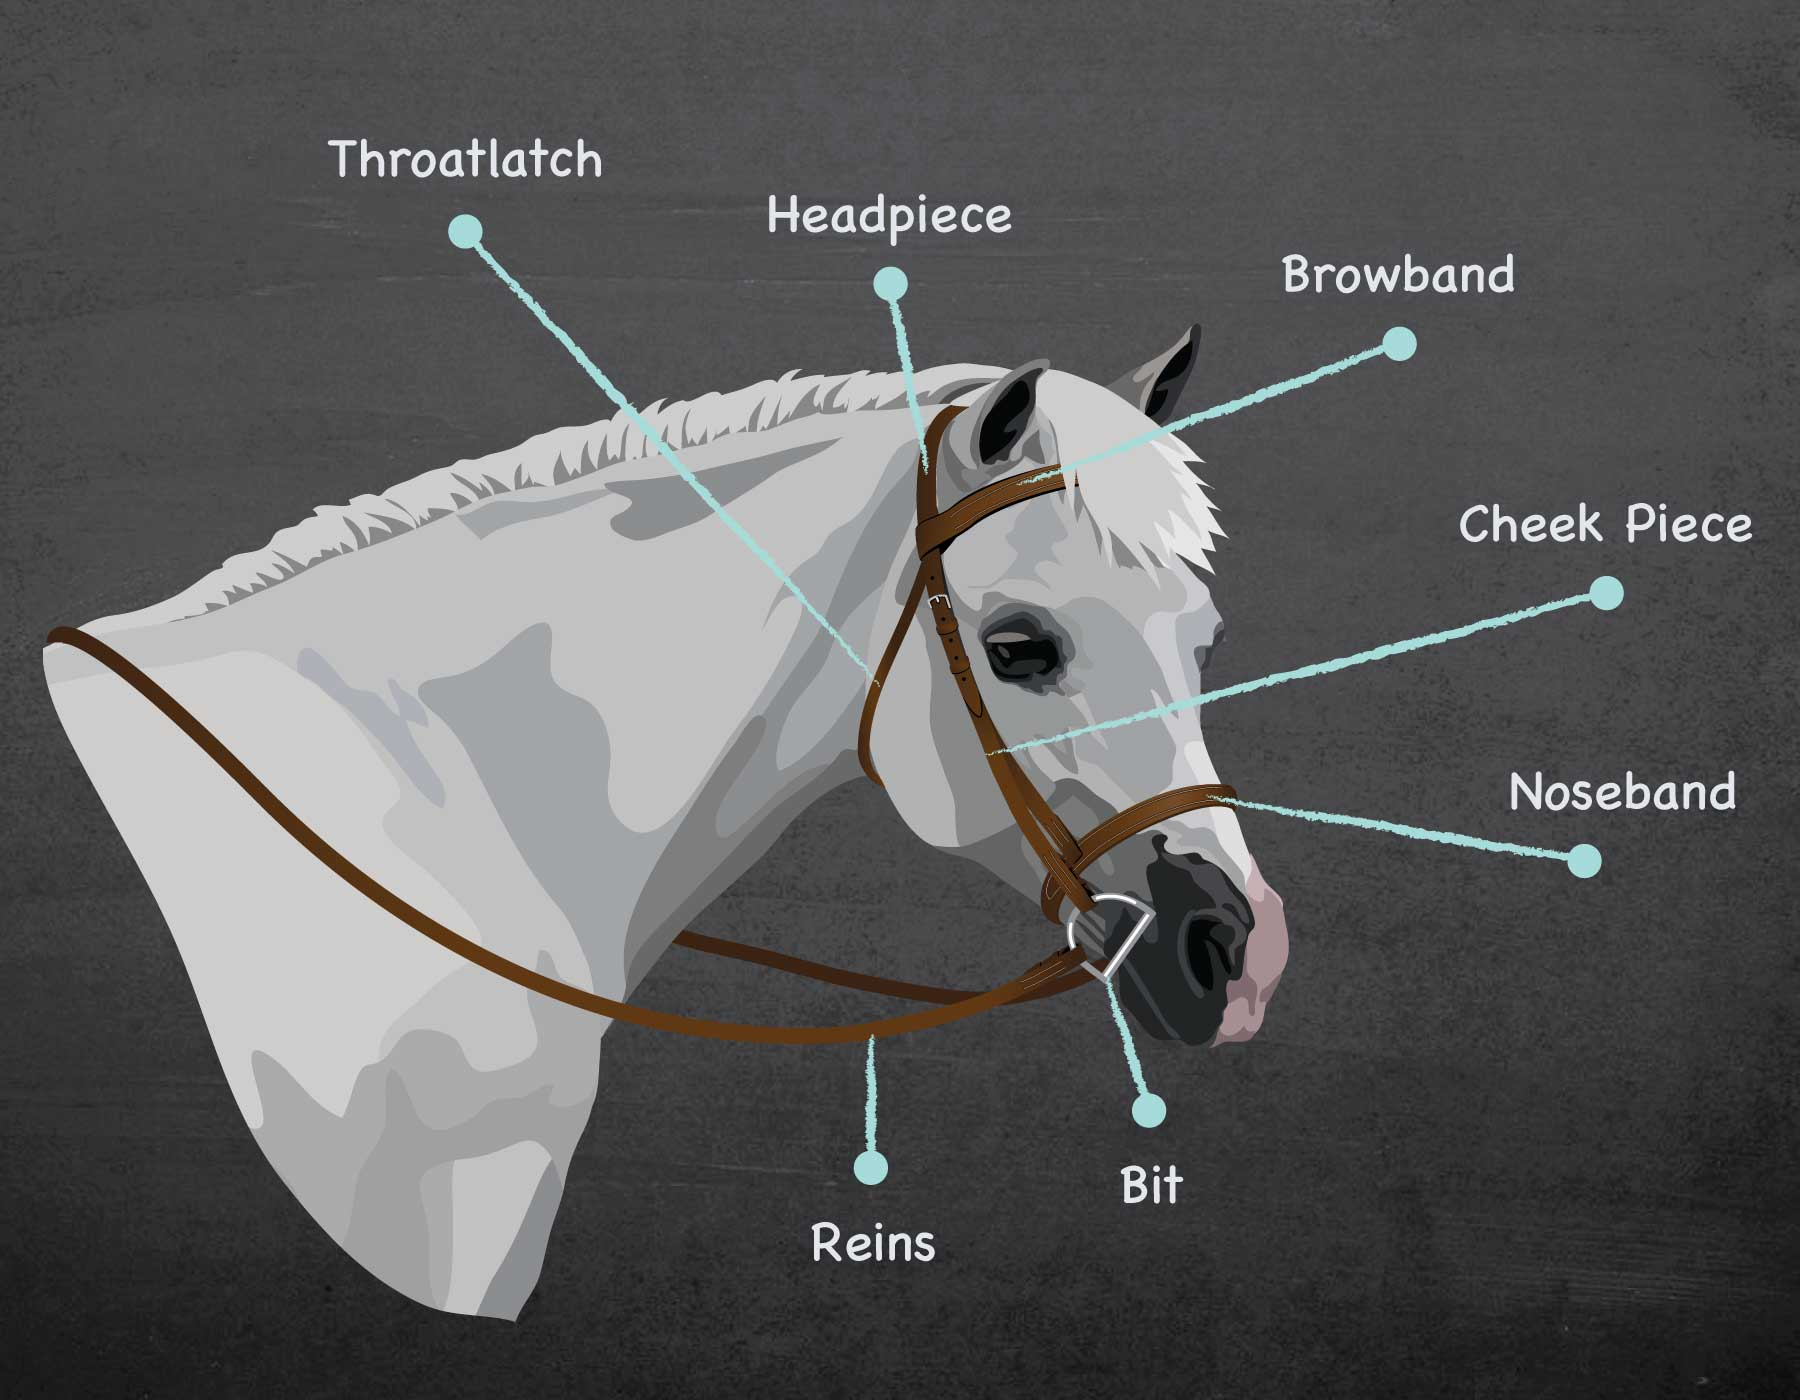 Bridle Parts & Types